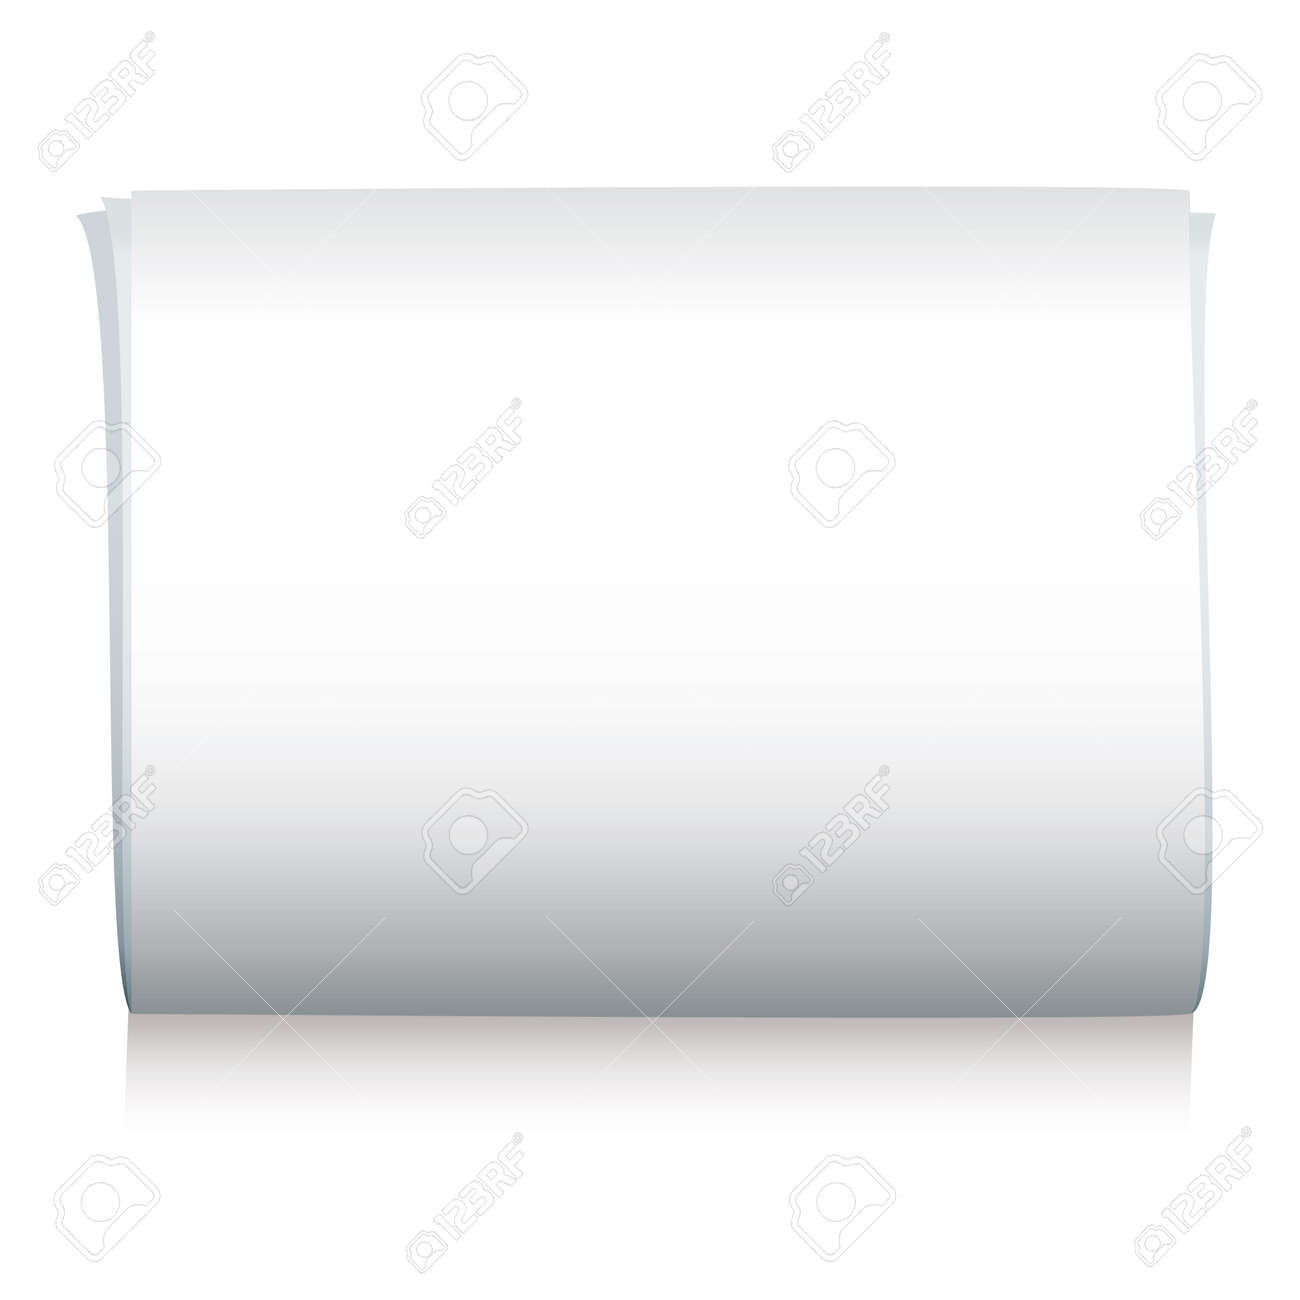 Blank illustrated newspaper with room to add your own copy Stock Vector - 4504845